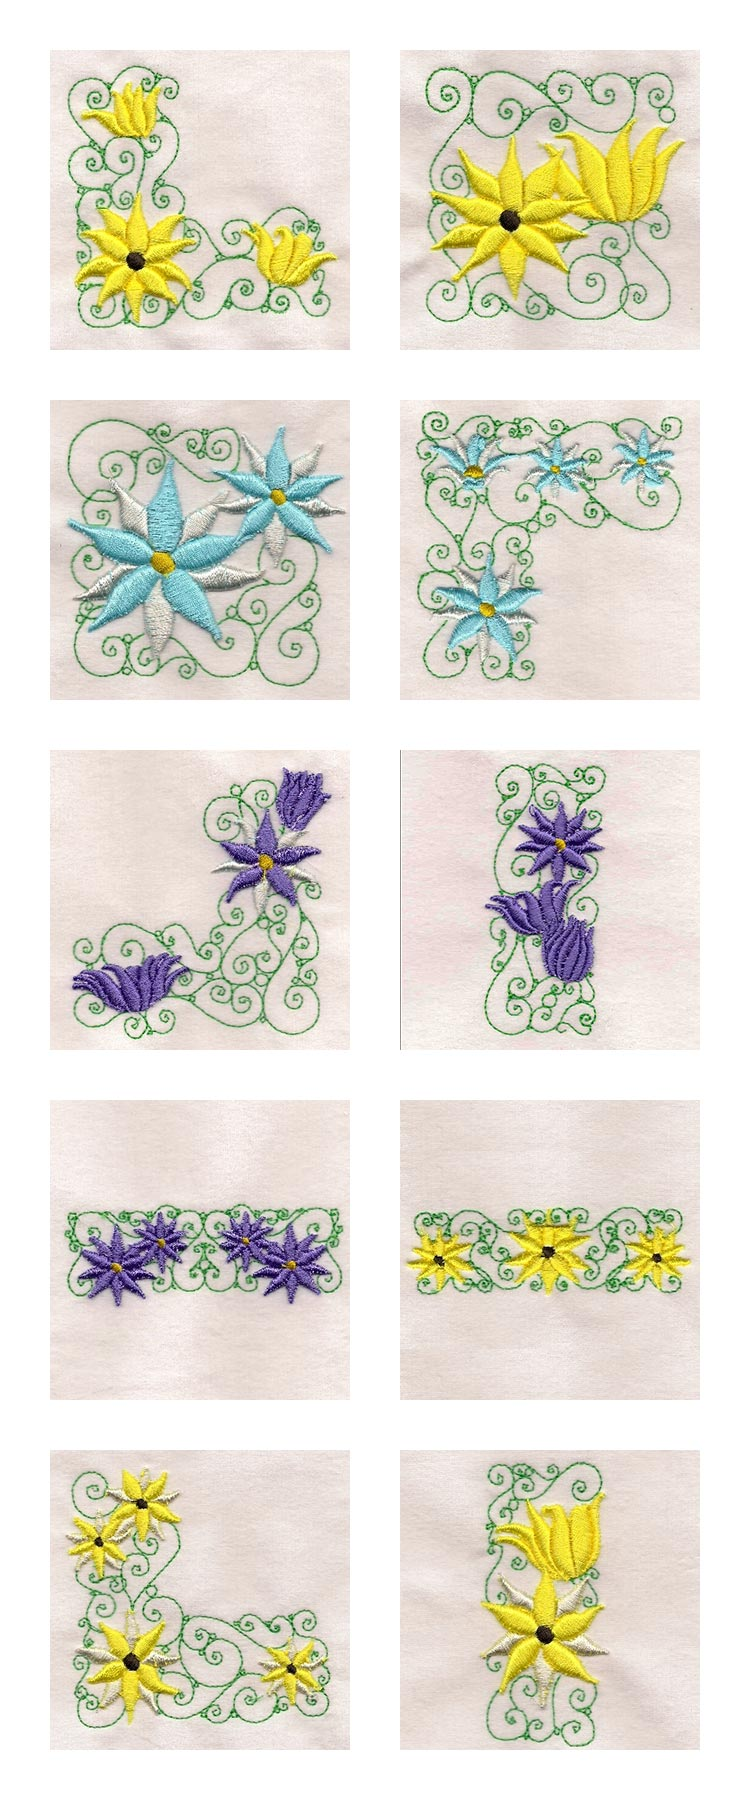 Embroidery Thread Australia  Free Embroidery Patterns